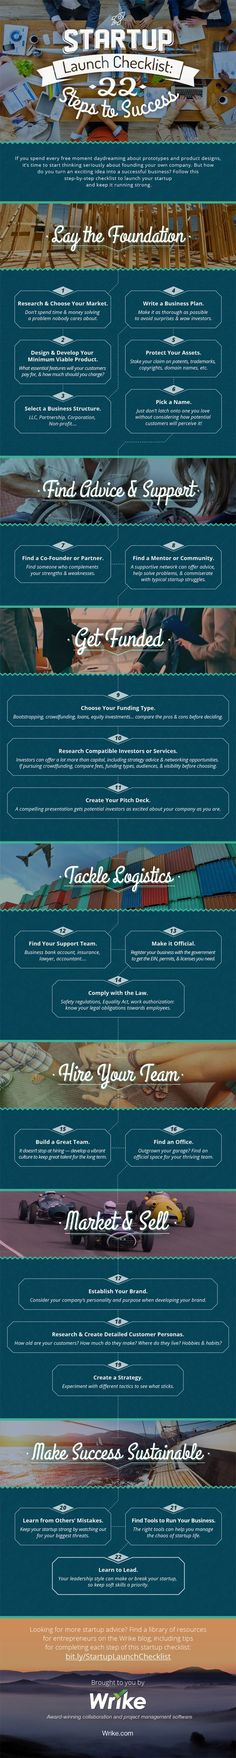 Infographic – Startup Launch Checklist: 22 Steps to Success. If you need some help launching your startup, check out this awesome infographic for a step-by-step roadmap on how to go from idea to successful business. Business Advice, Business Entrepreneur, Business Planning, Business Marketing, Business Infographics, Business Innovation, Starting Your Own Business, Start Up Business, Online Business